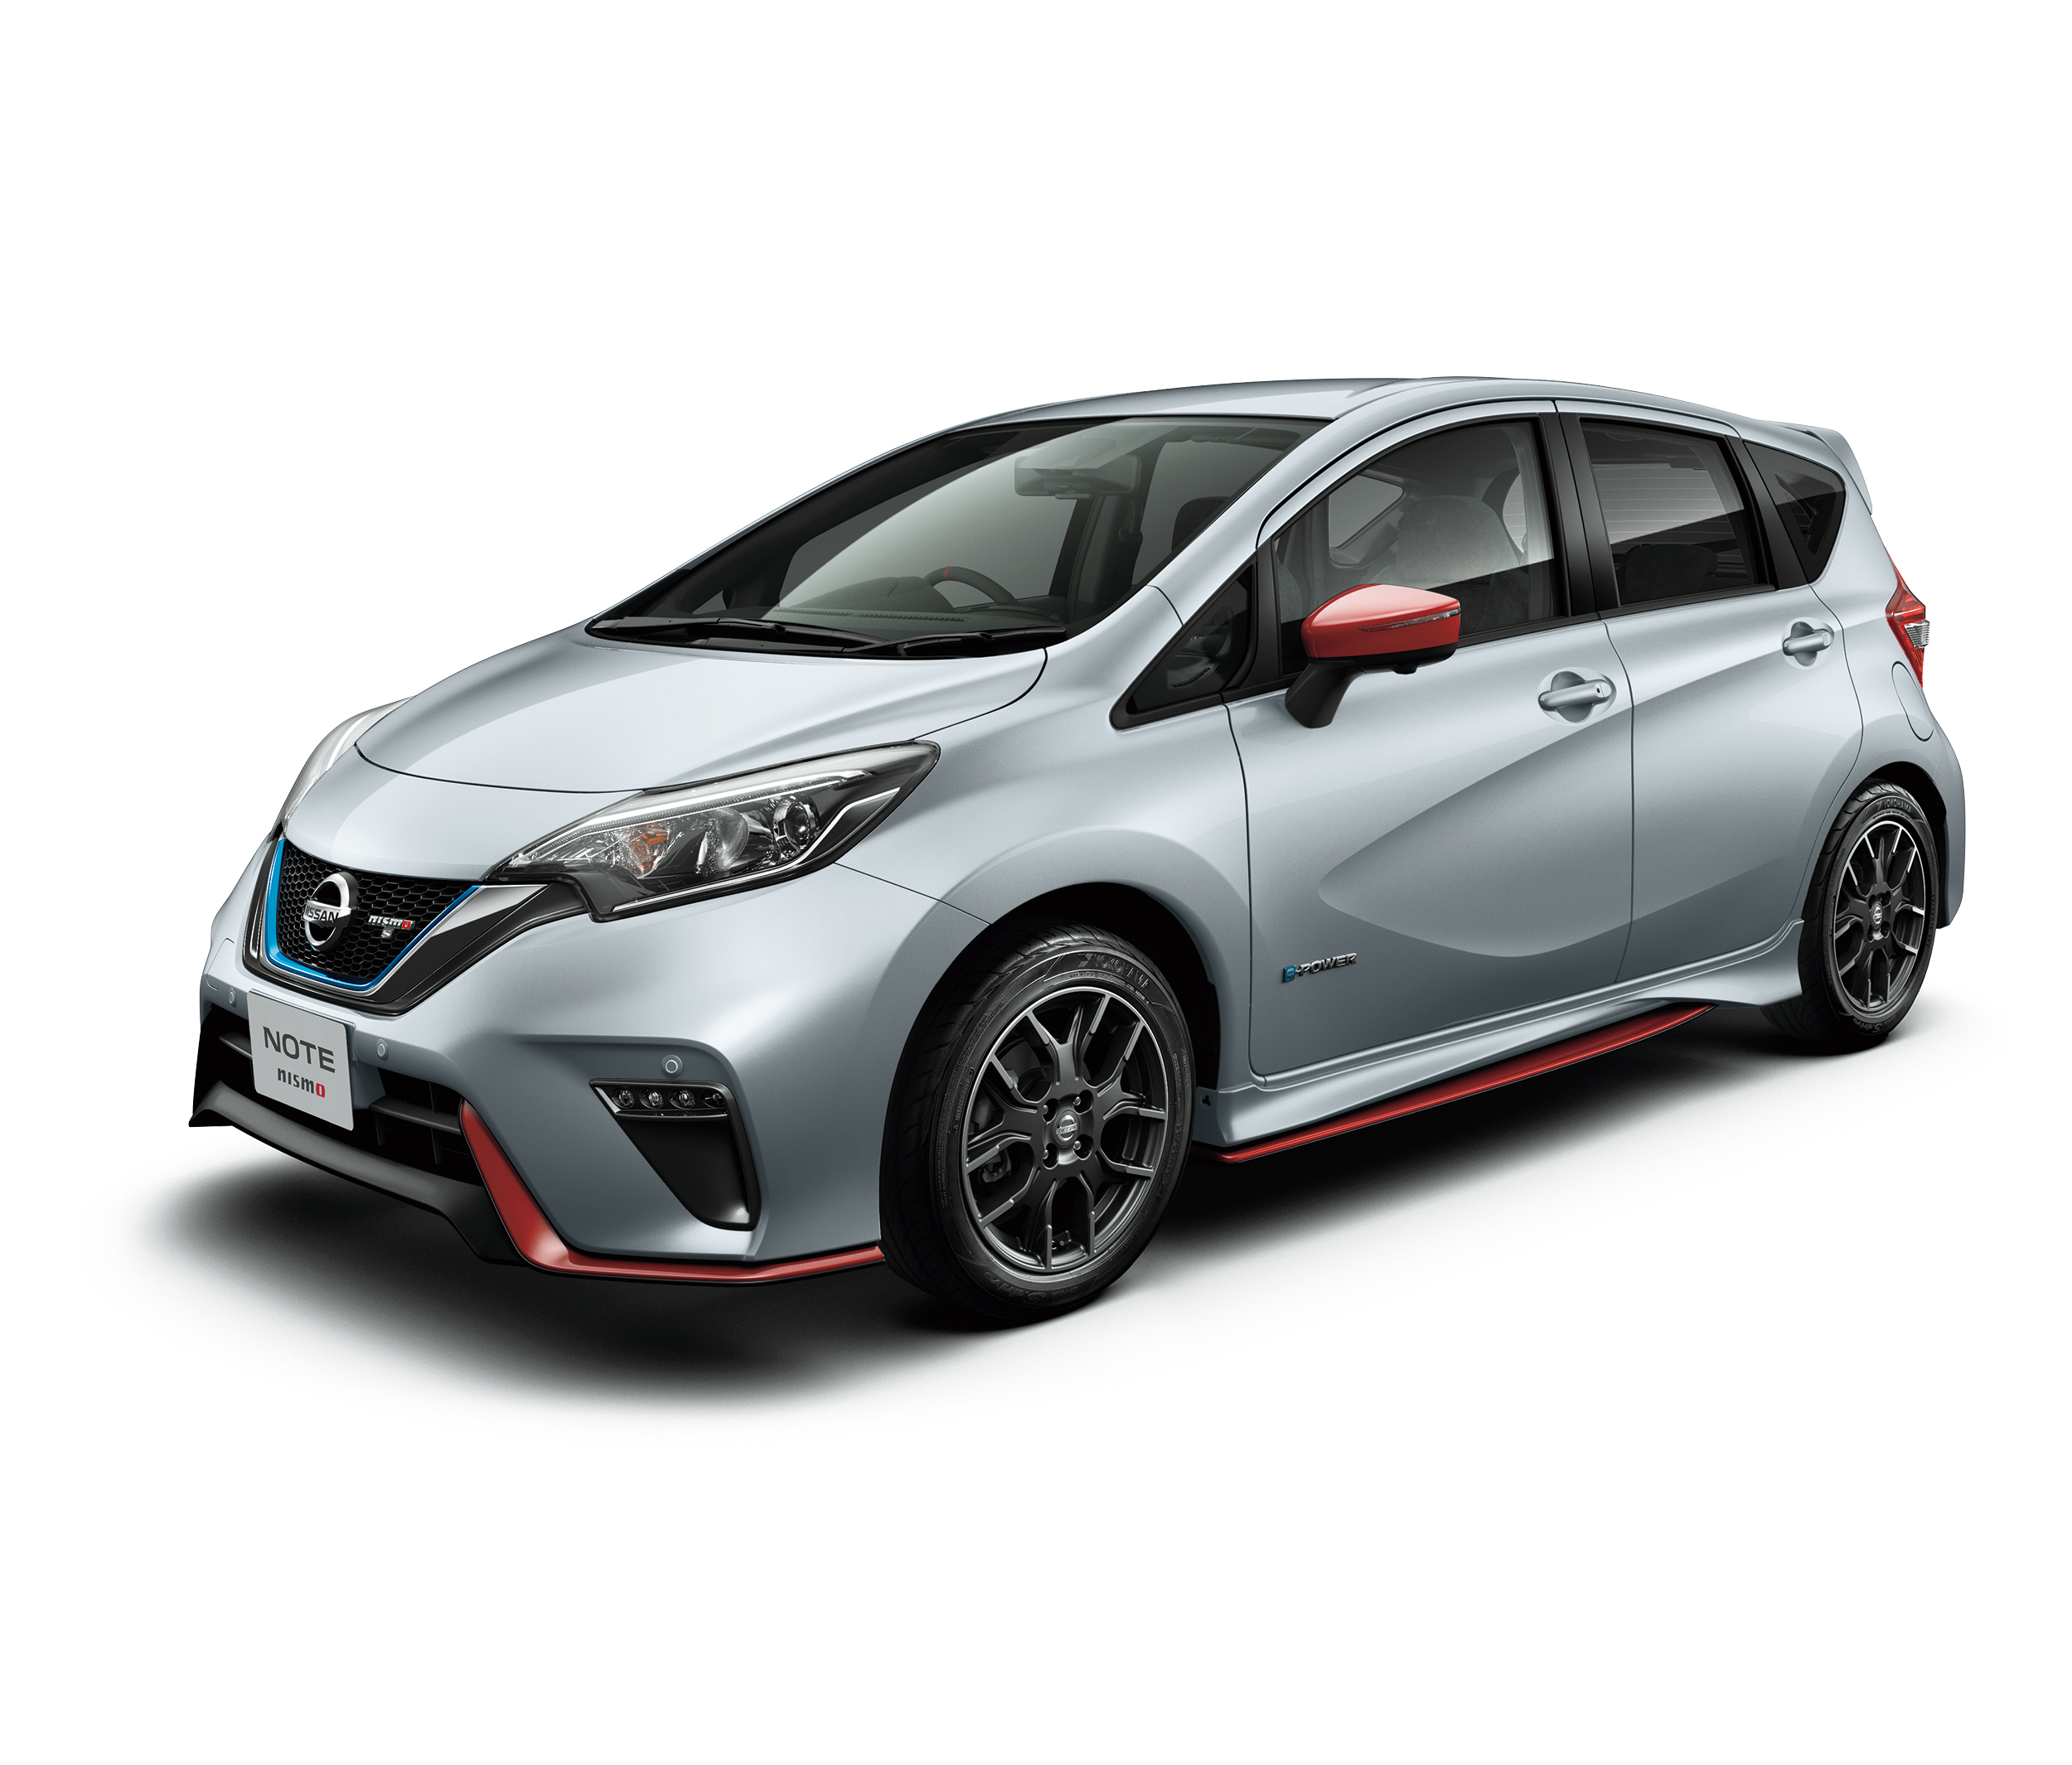 2019 Nissan Note E Power Nismo S Top Speed